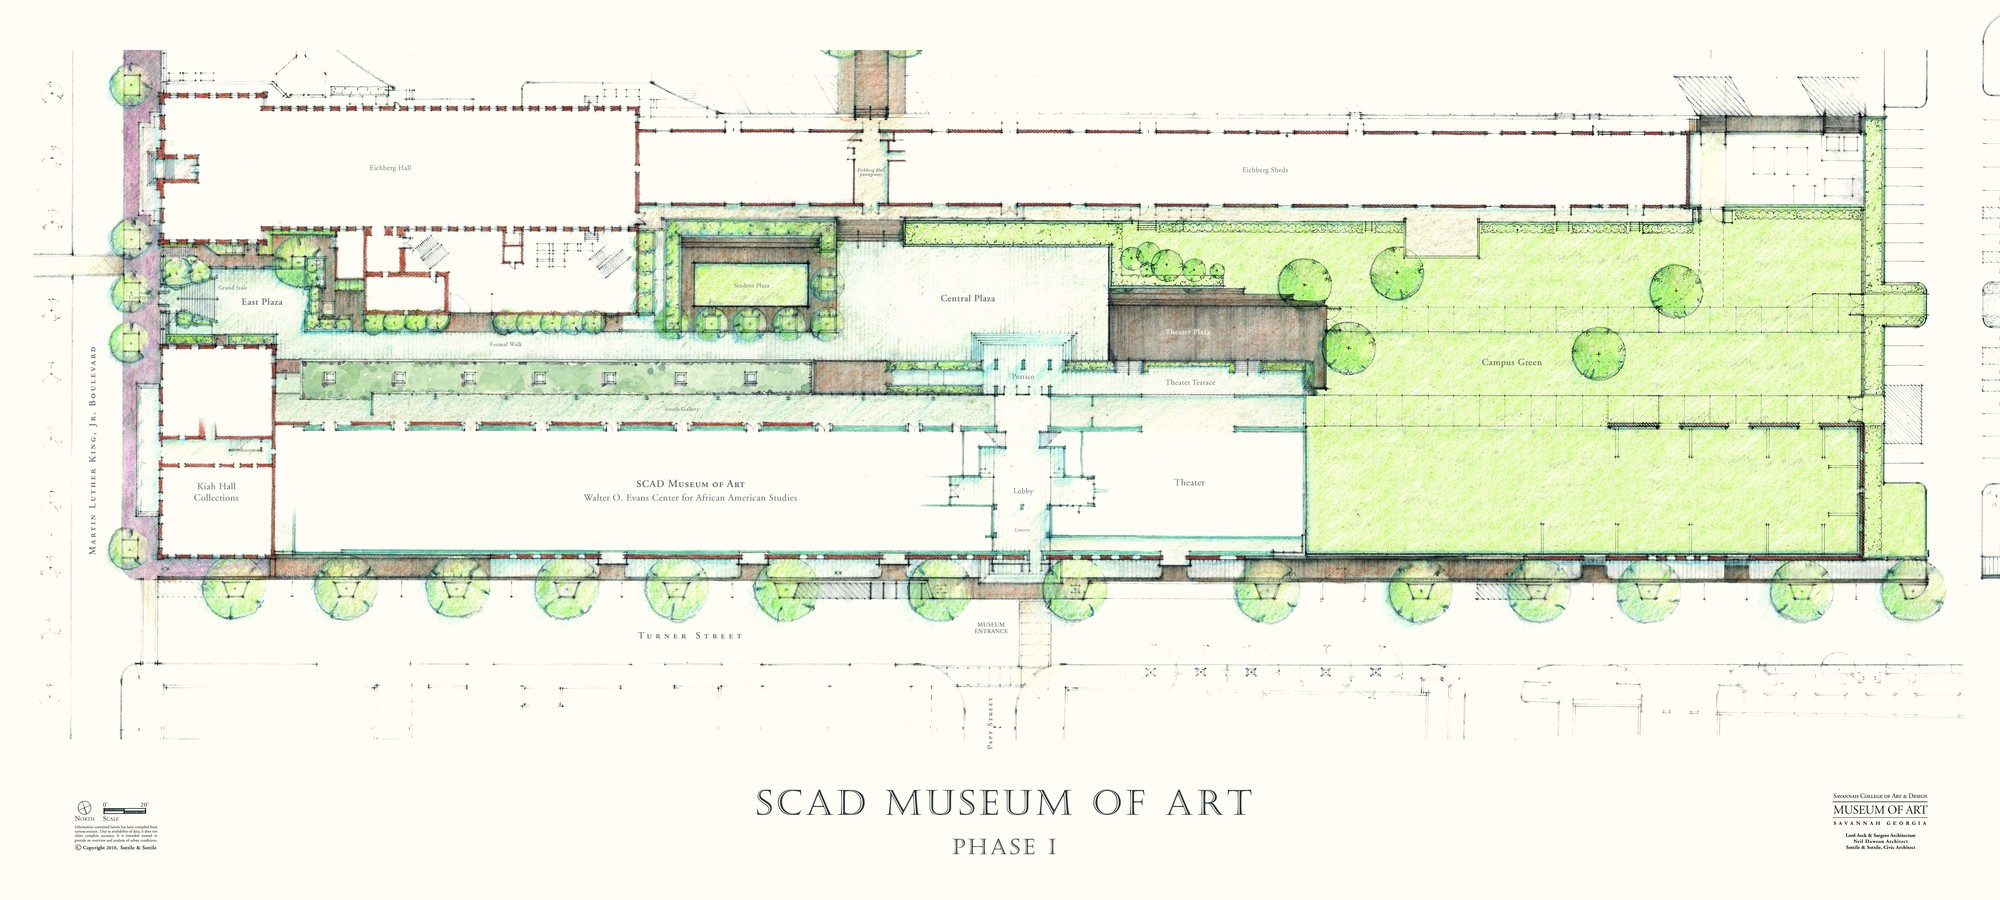 Design A Floor Plan Gallery Of Scad Museum Of Art Sottile Amp Sottile And Lord